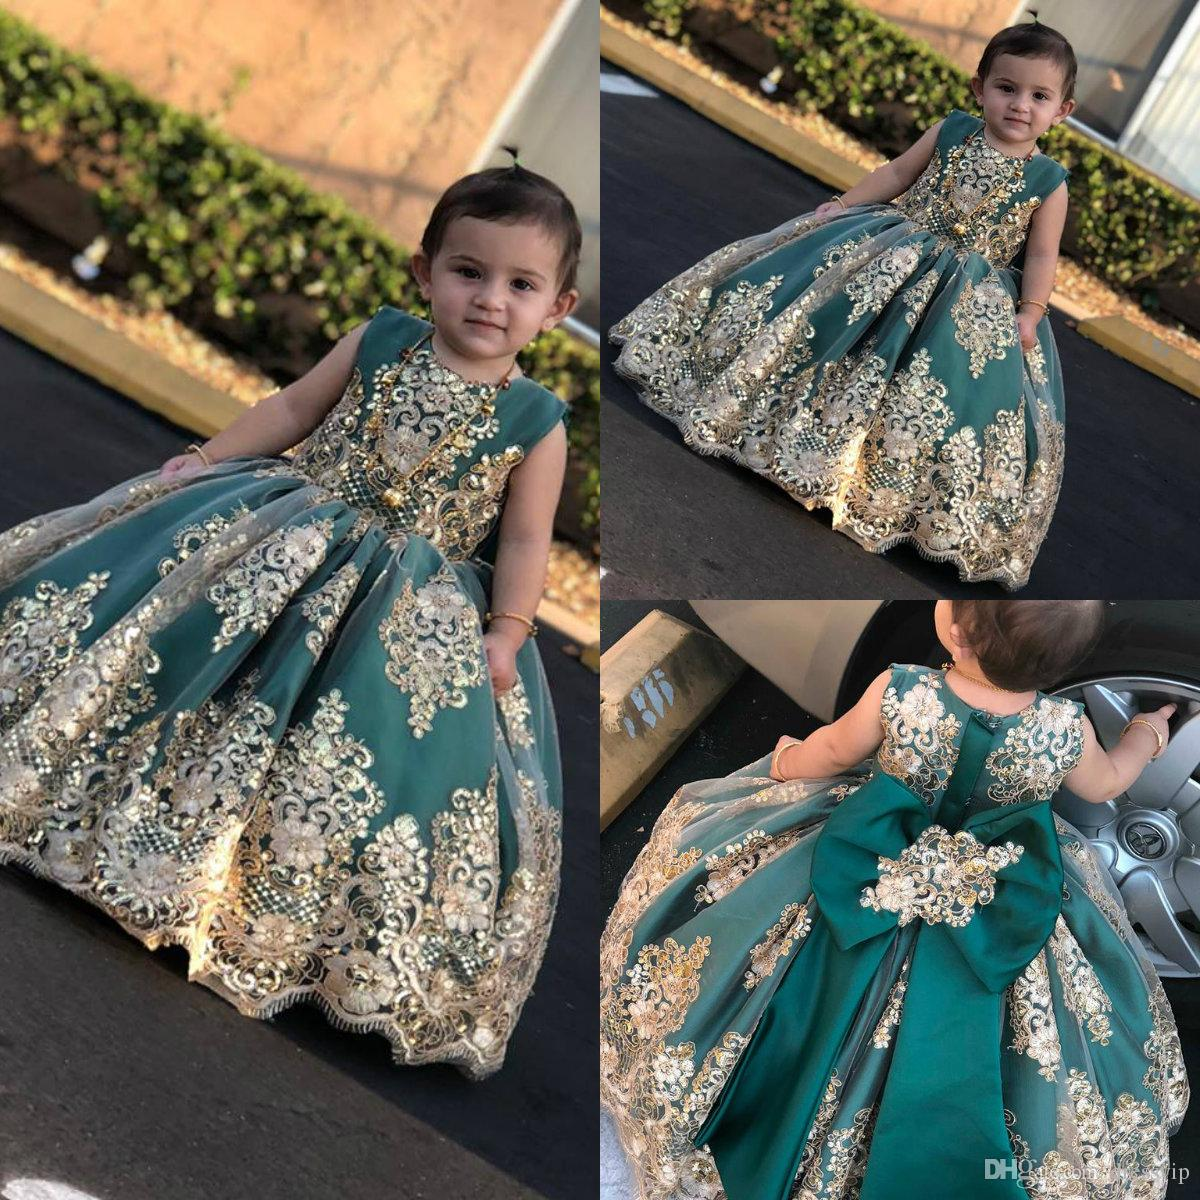 2b2f68049c96f 2019 Little Muse Flower Girl Dresses For Wedding Jewel Neck Lace Gold  Appliqued Sequined Girls Pageant Dress Small Girl Princess Gowns